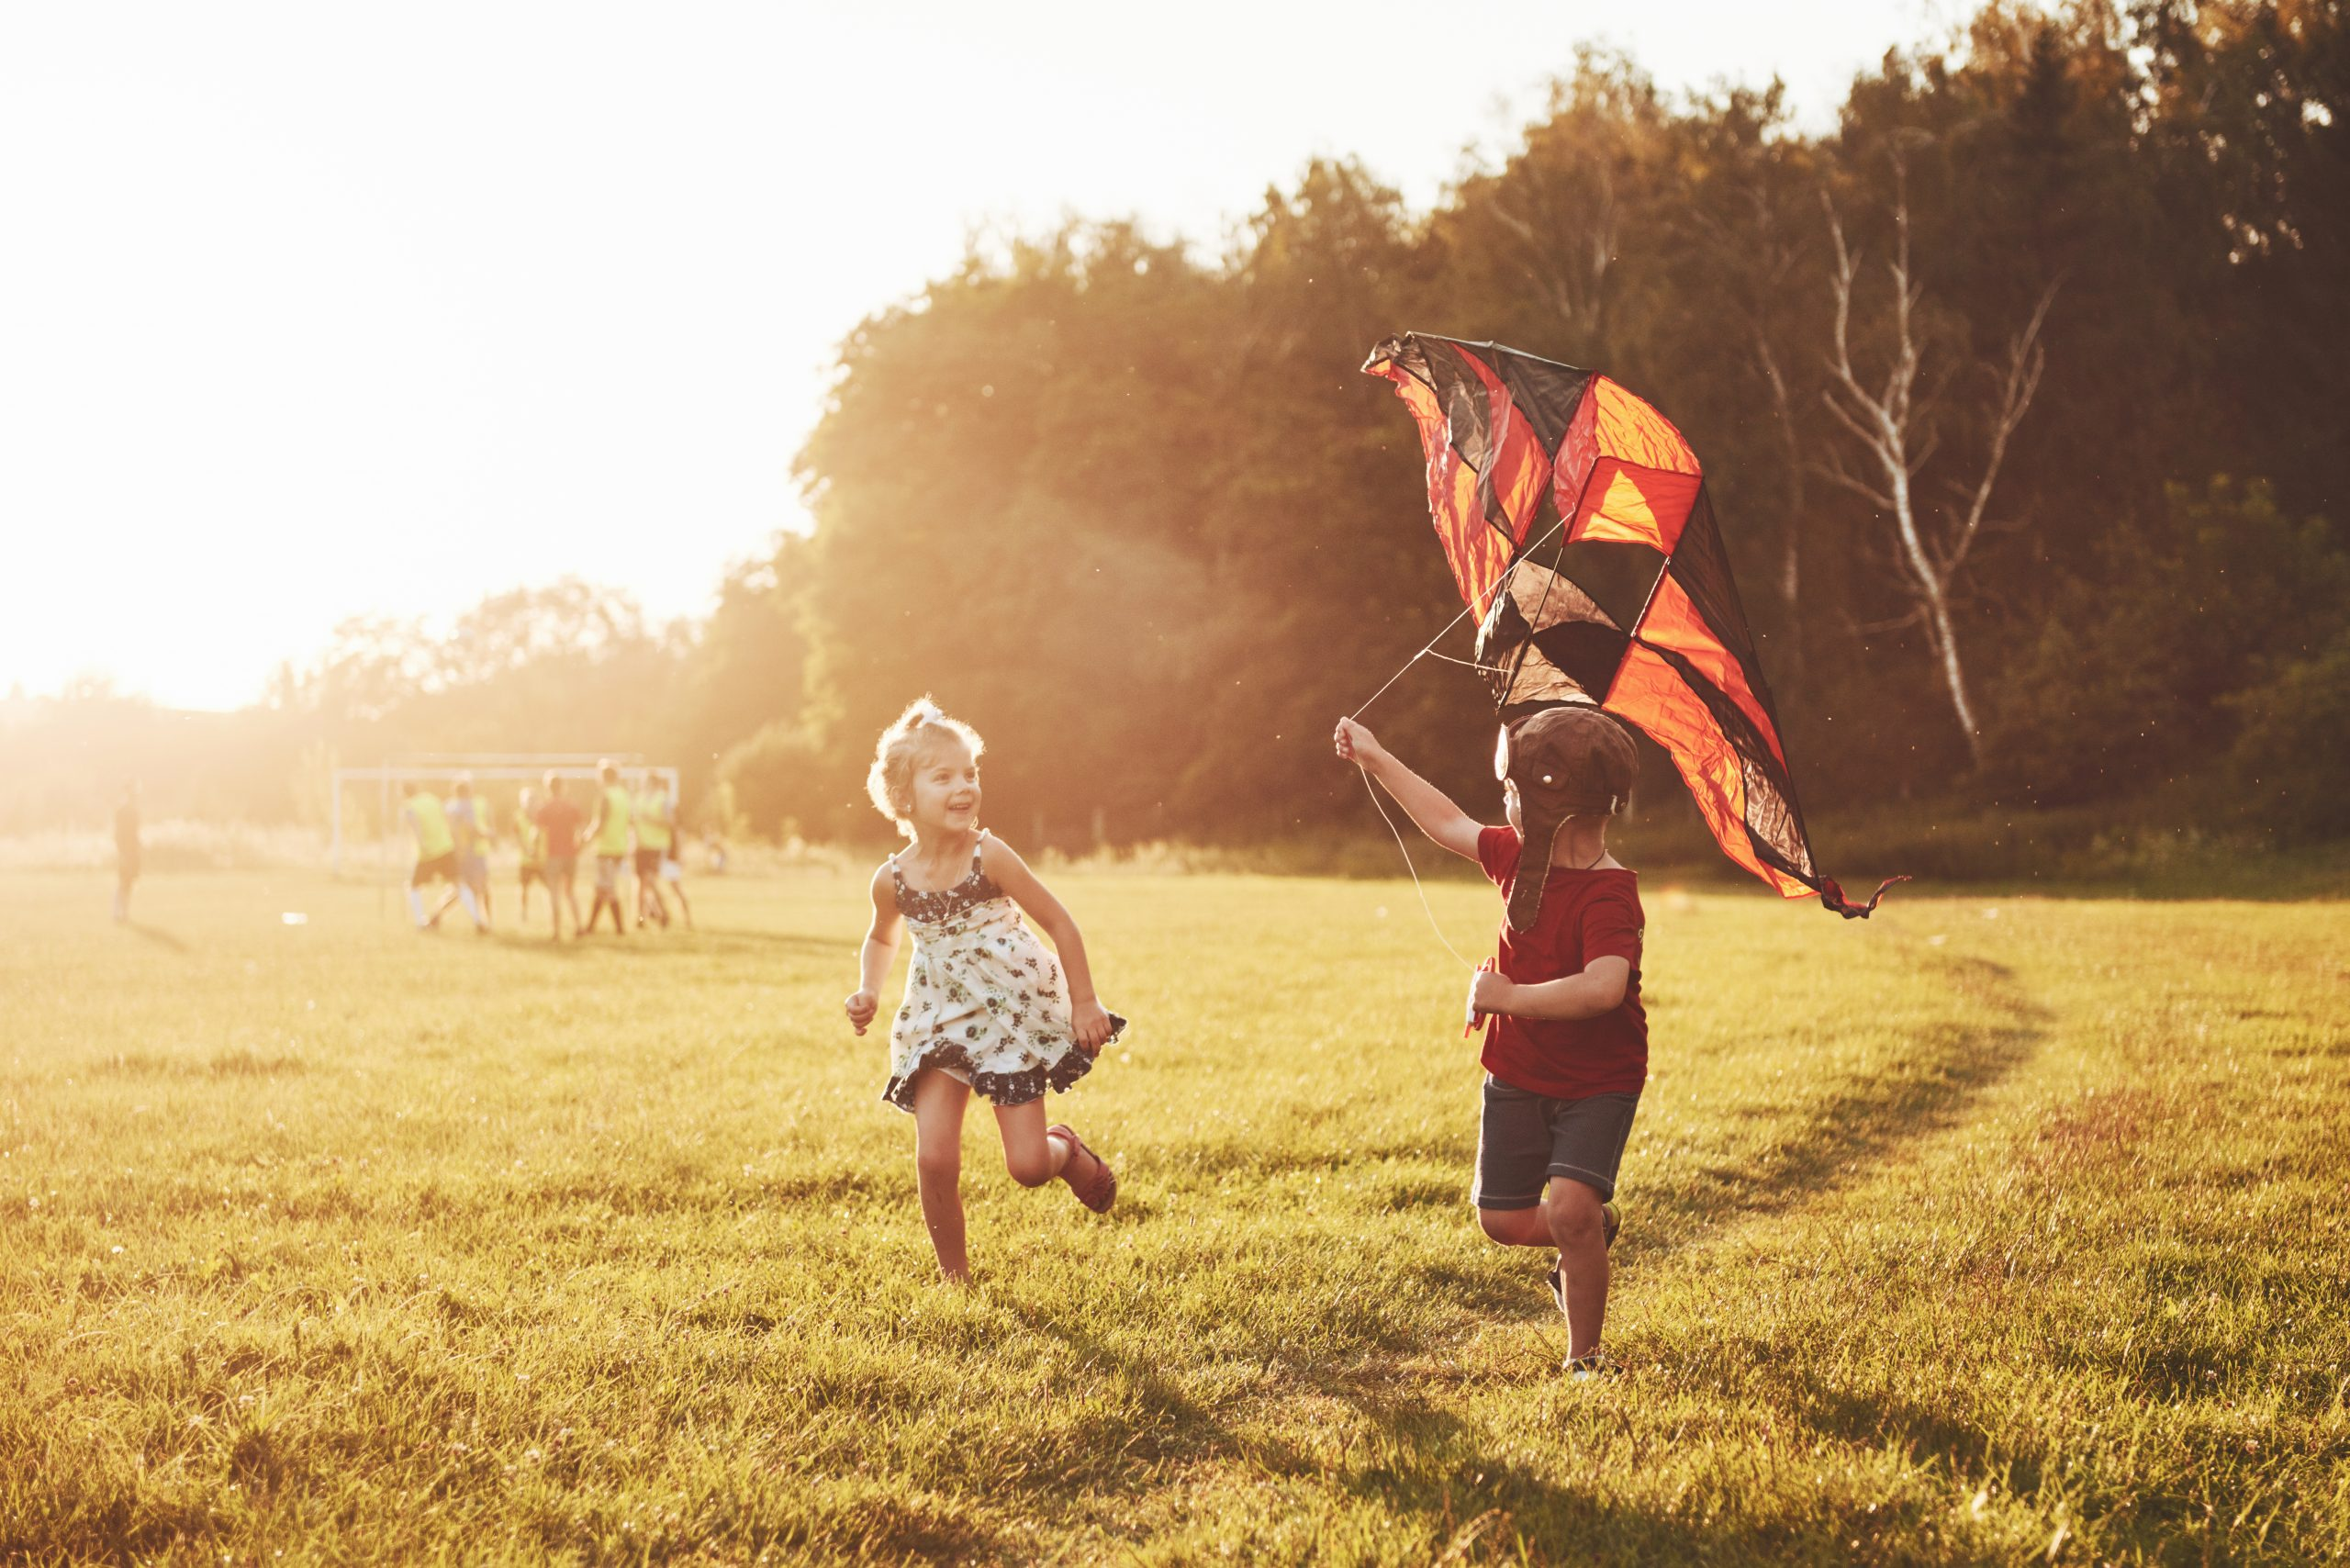 Happy children launch a kite in the field at sunset. Little boy and girl on summer vacation